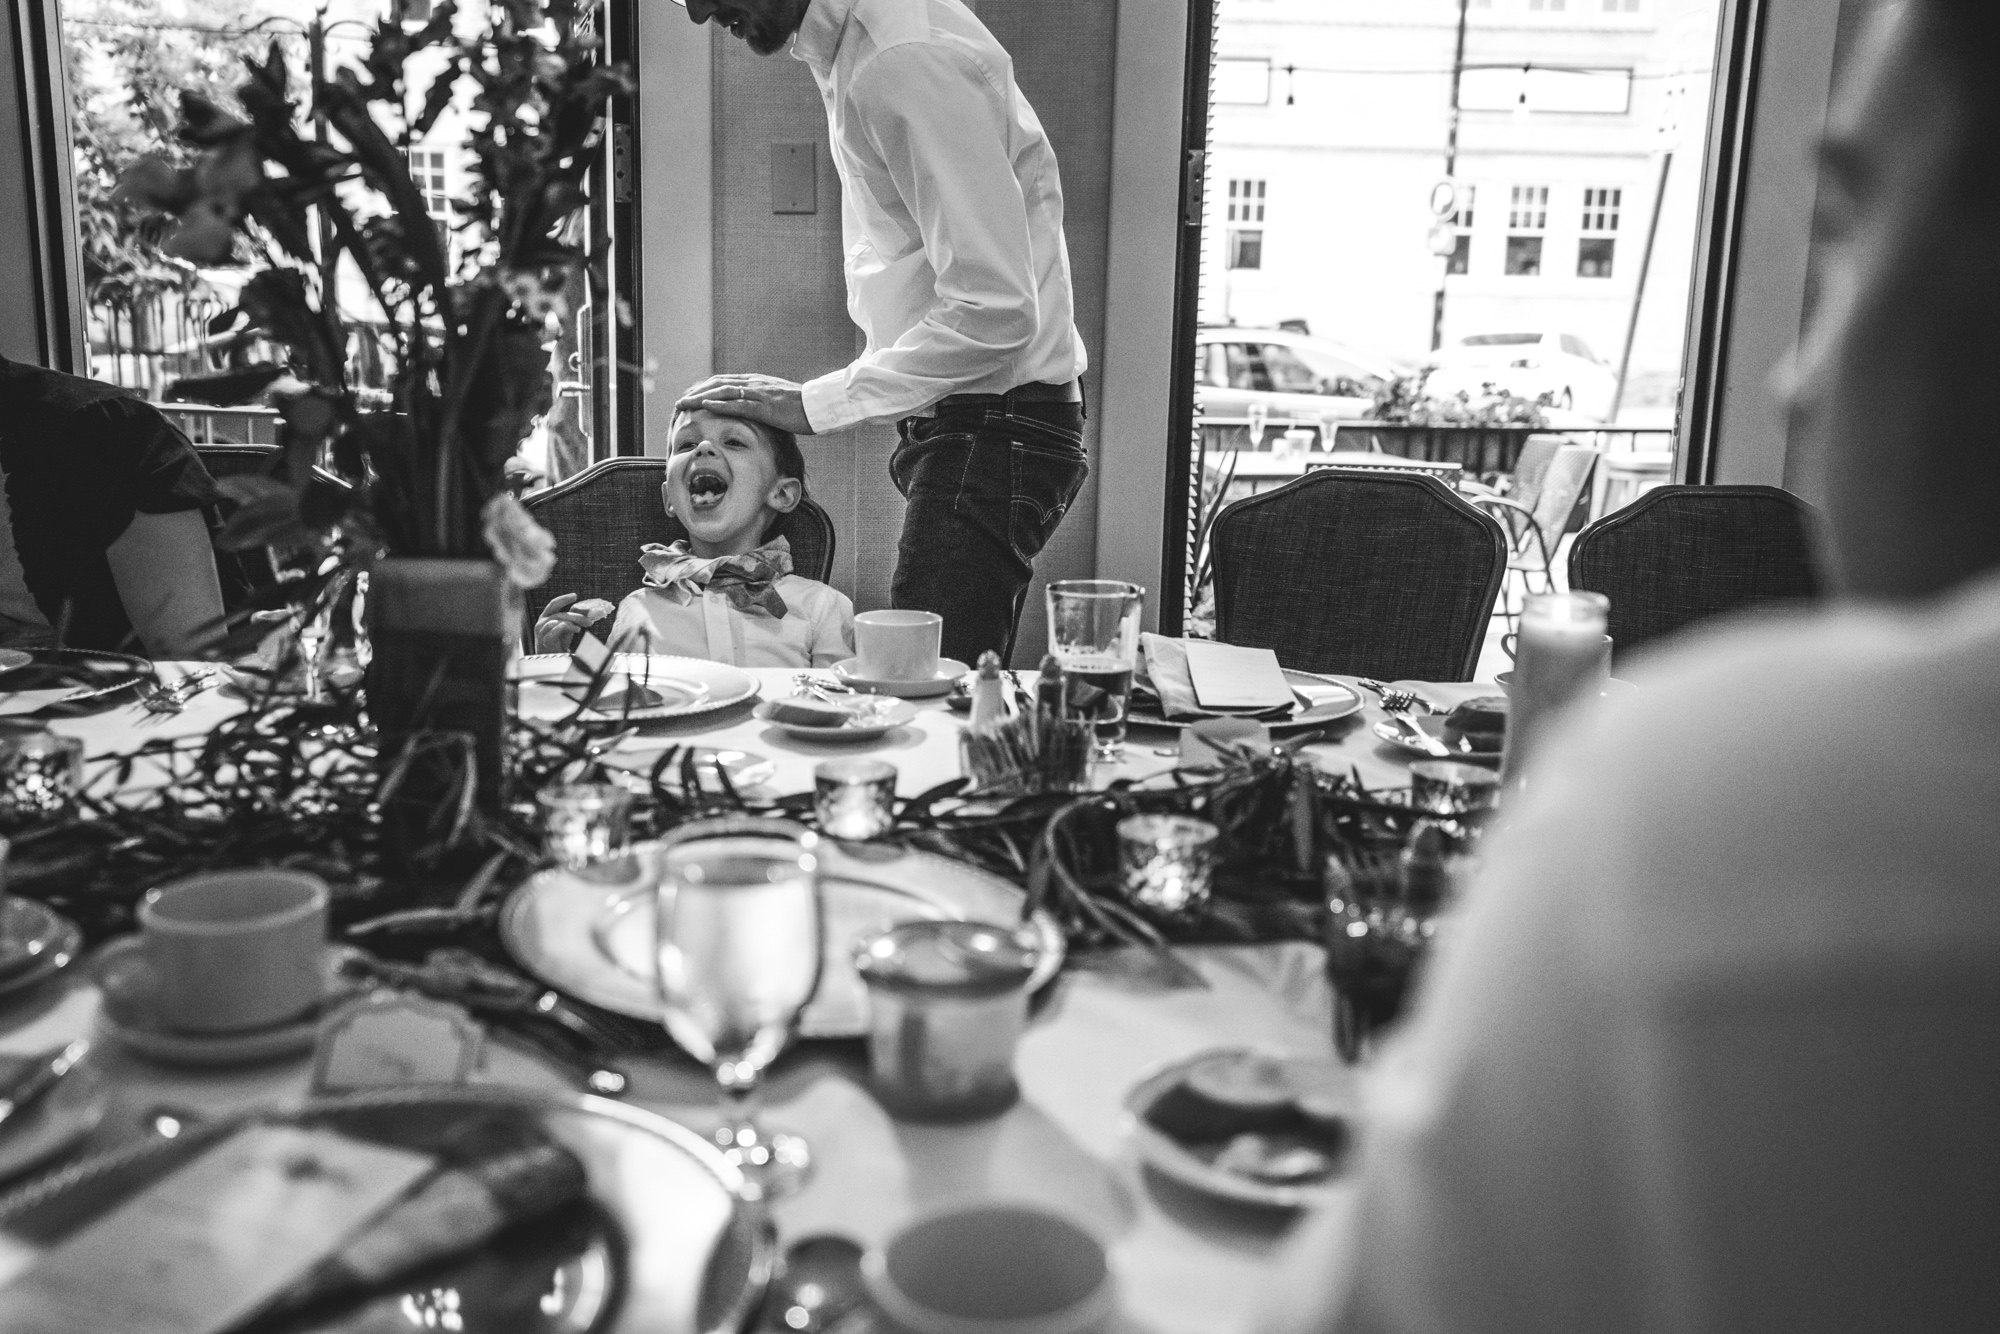 Black and white photo of a little boy at a table at a wedding reception, opening his mouth wide with it full of food as his father touches him on the head